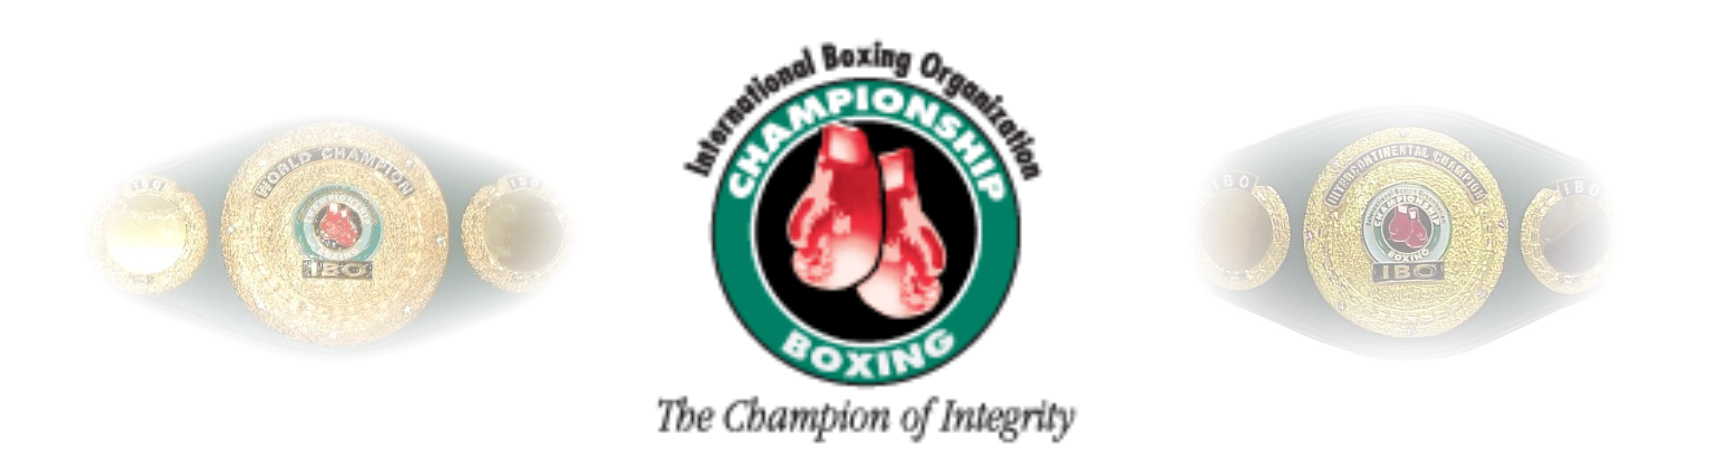 IBO – INTERNATIONAL BOXING ORGANIZATION